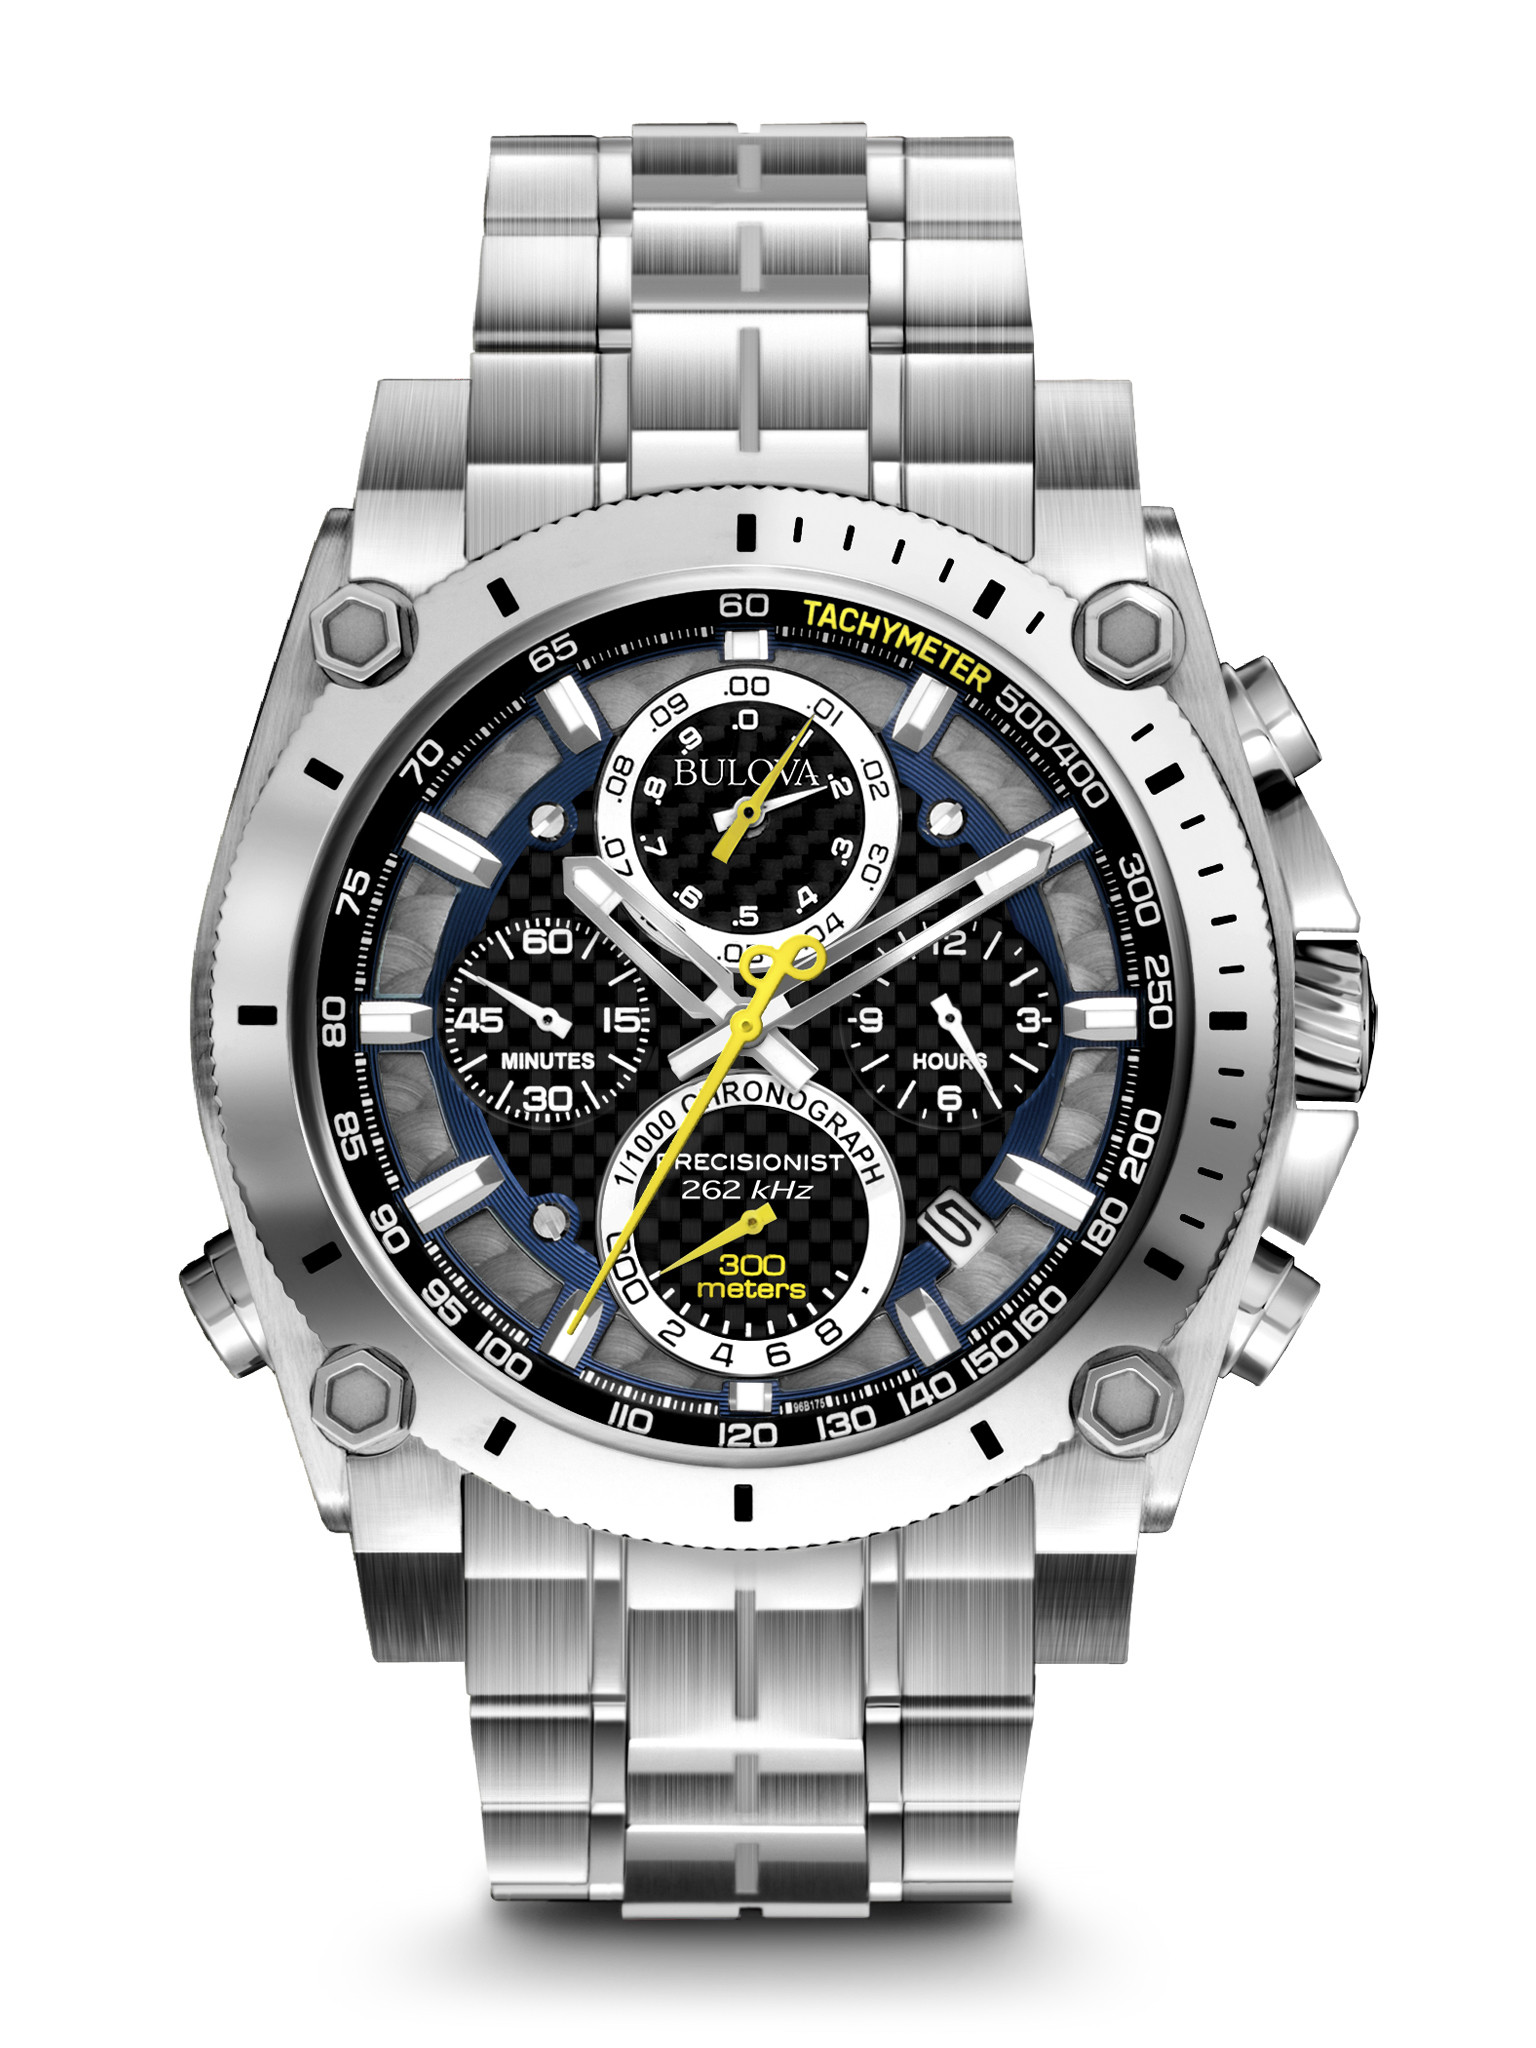 Bulova Precisionist Chronograph Watch Review